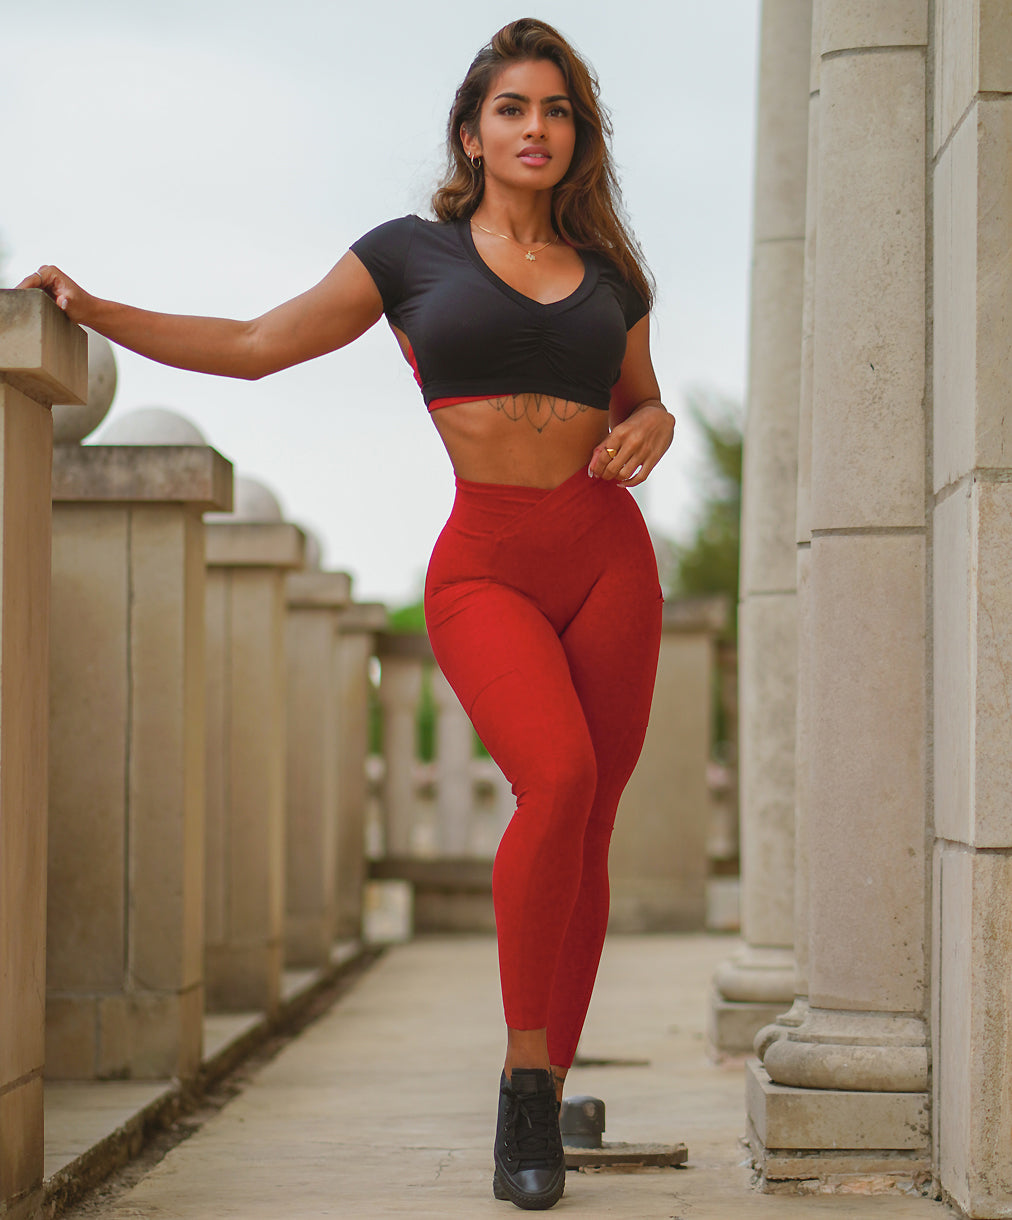 model in black crop top and red workout leggings